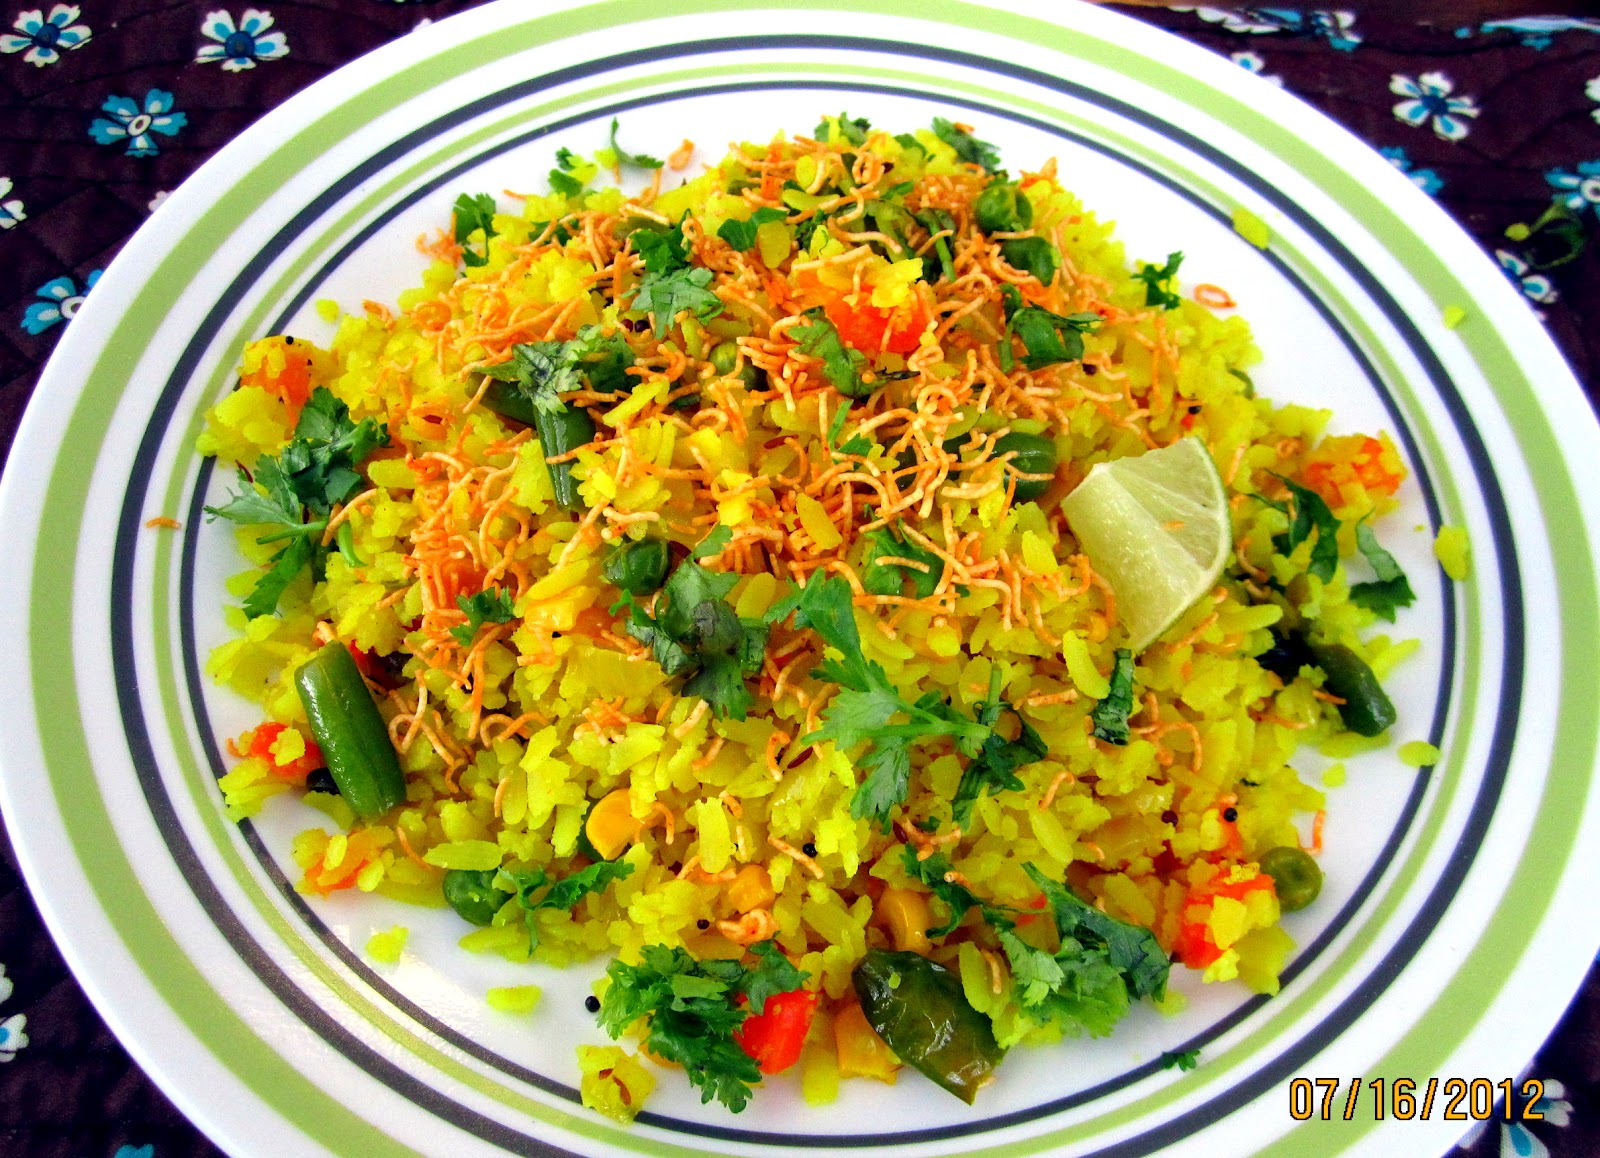 Cooking4hubby!: Vegetable Poha